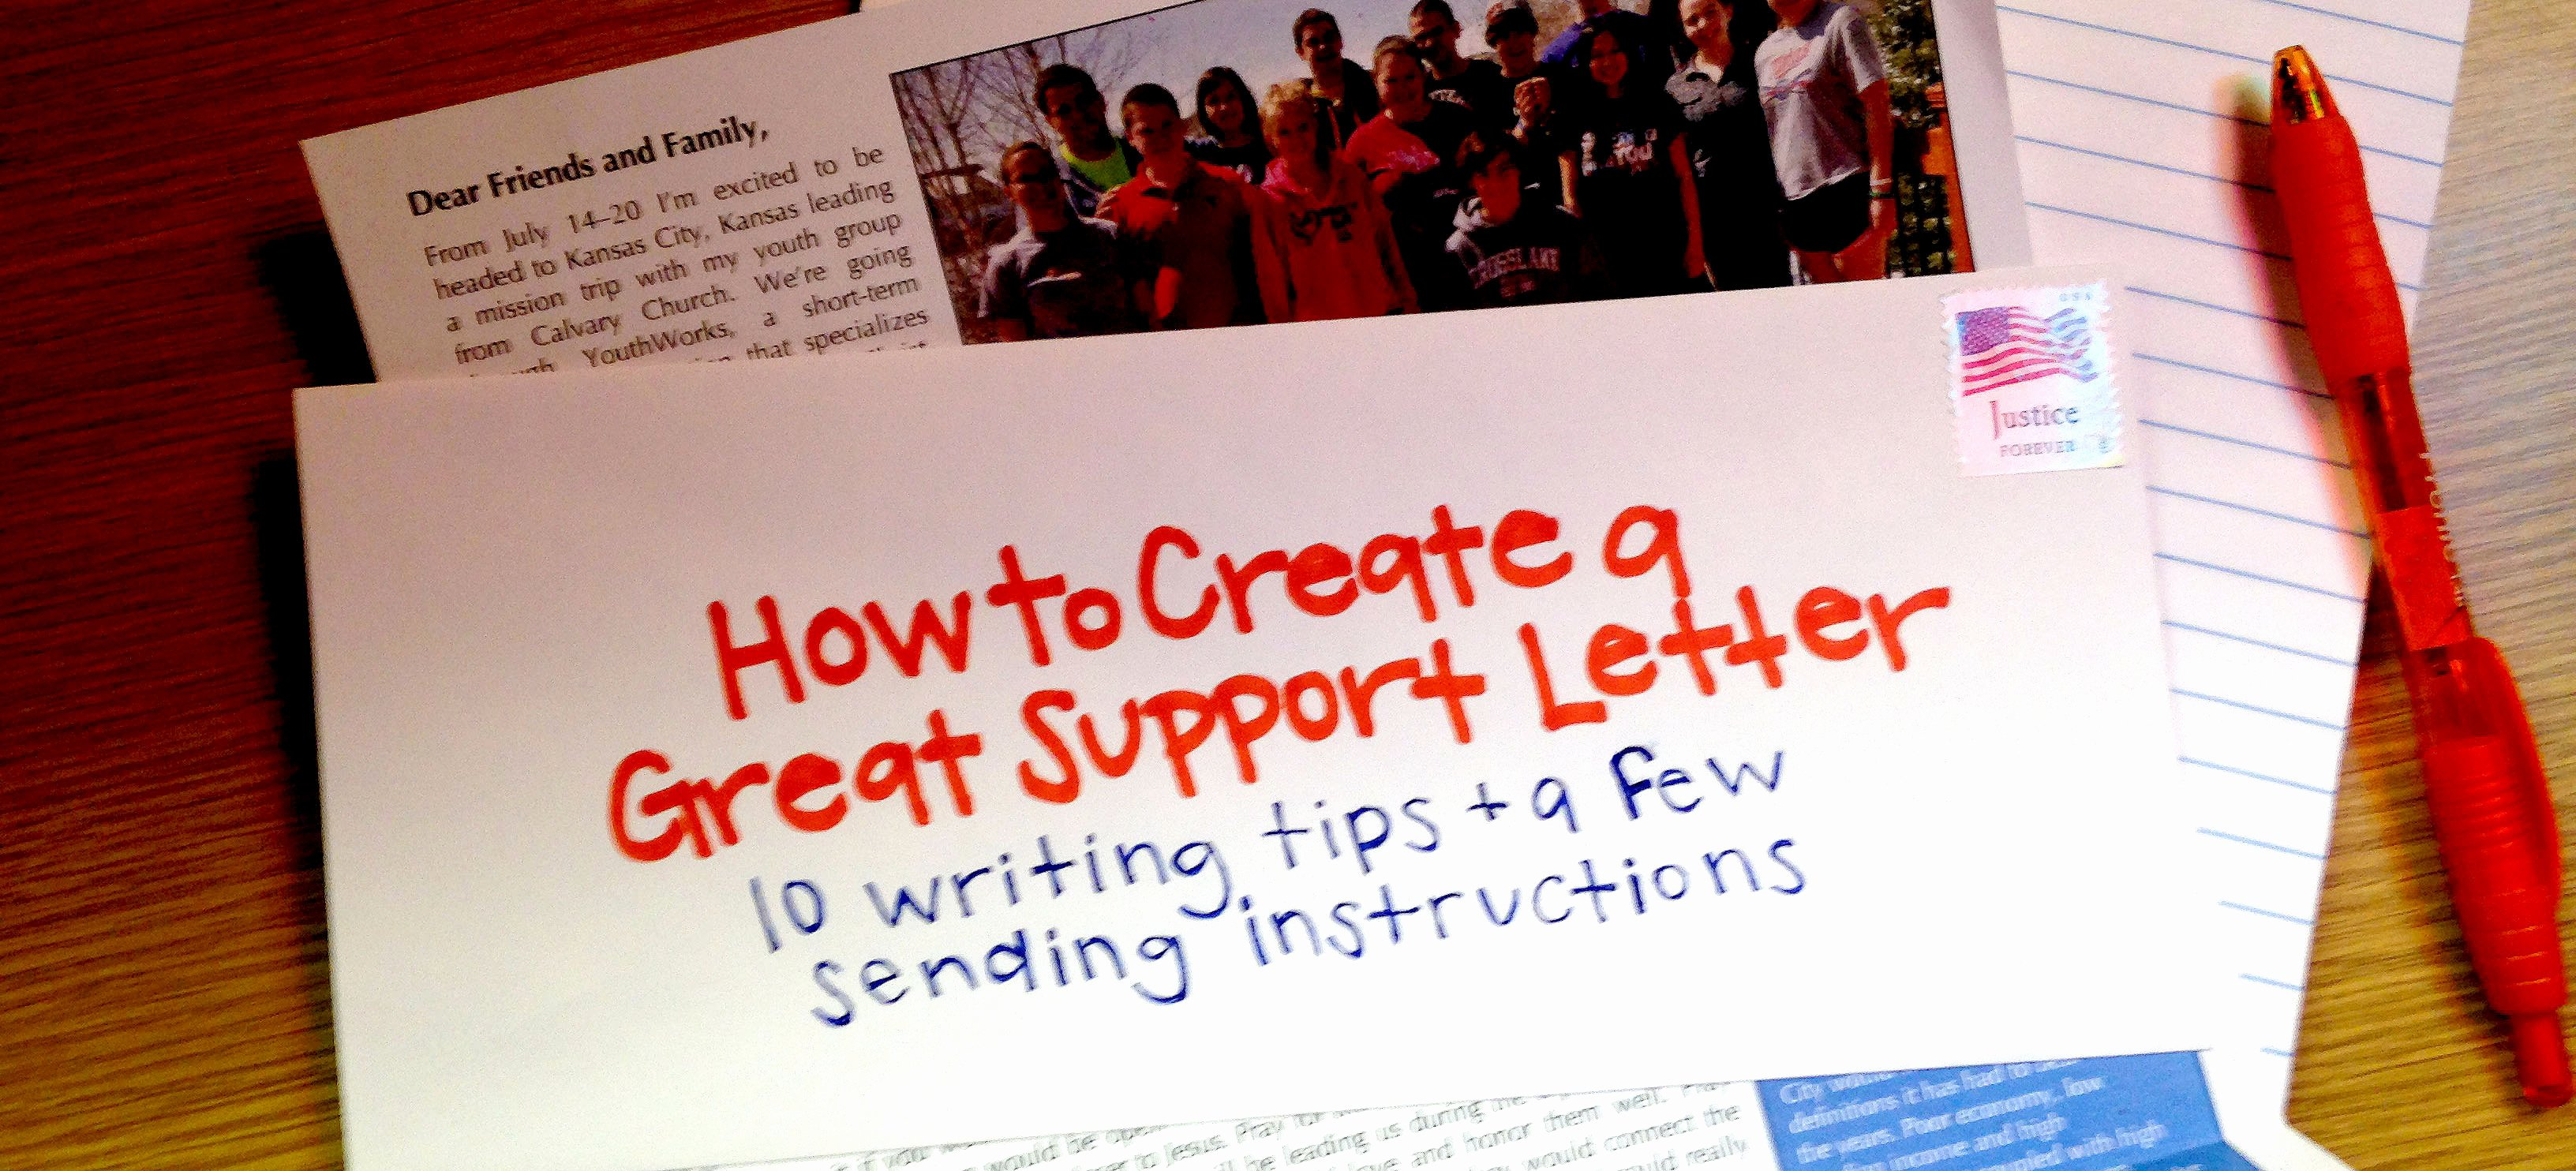 Examples Of Mission Trip Fundraising Letters Best Of How to Create A Great Support Letter Youthworks